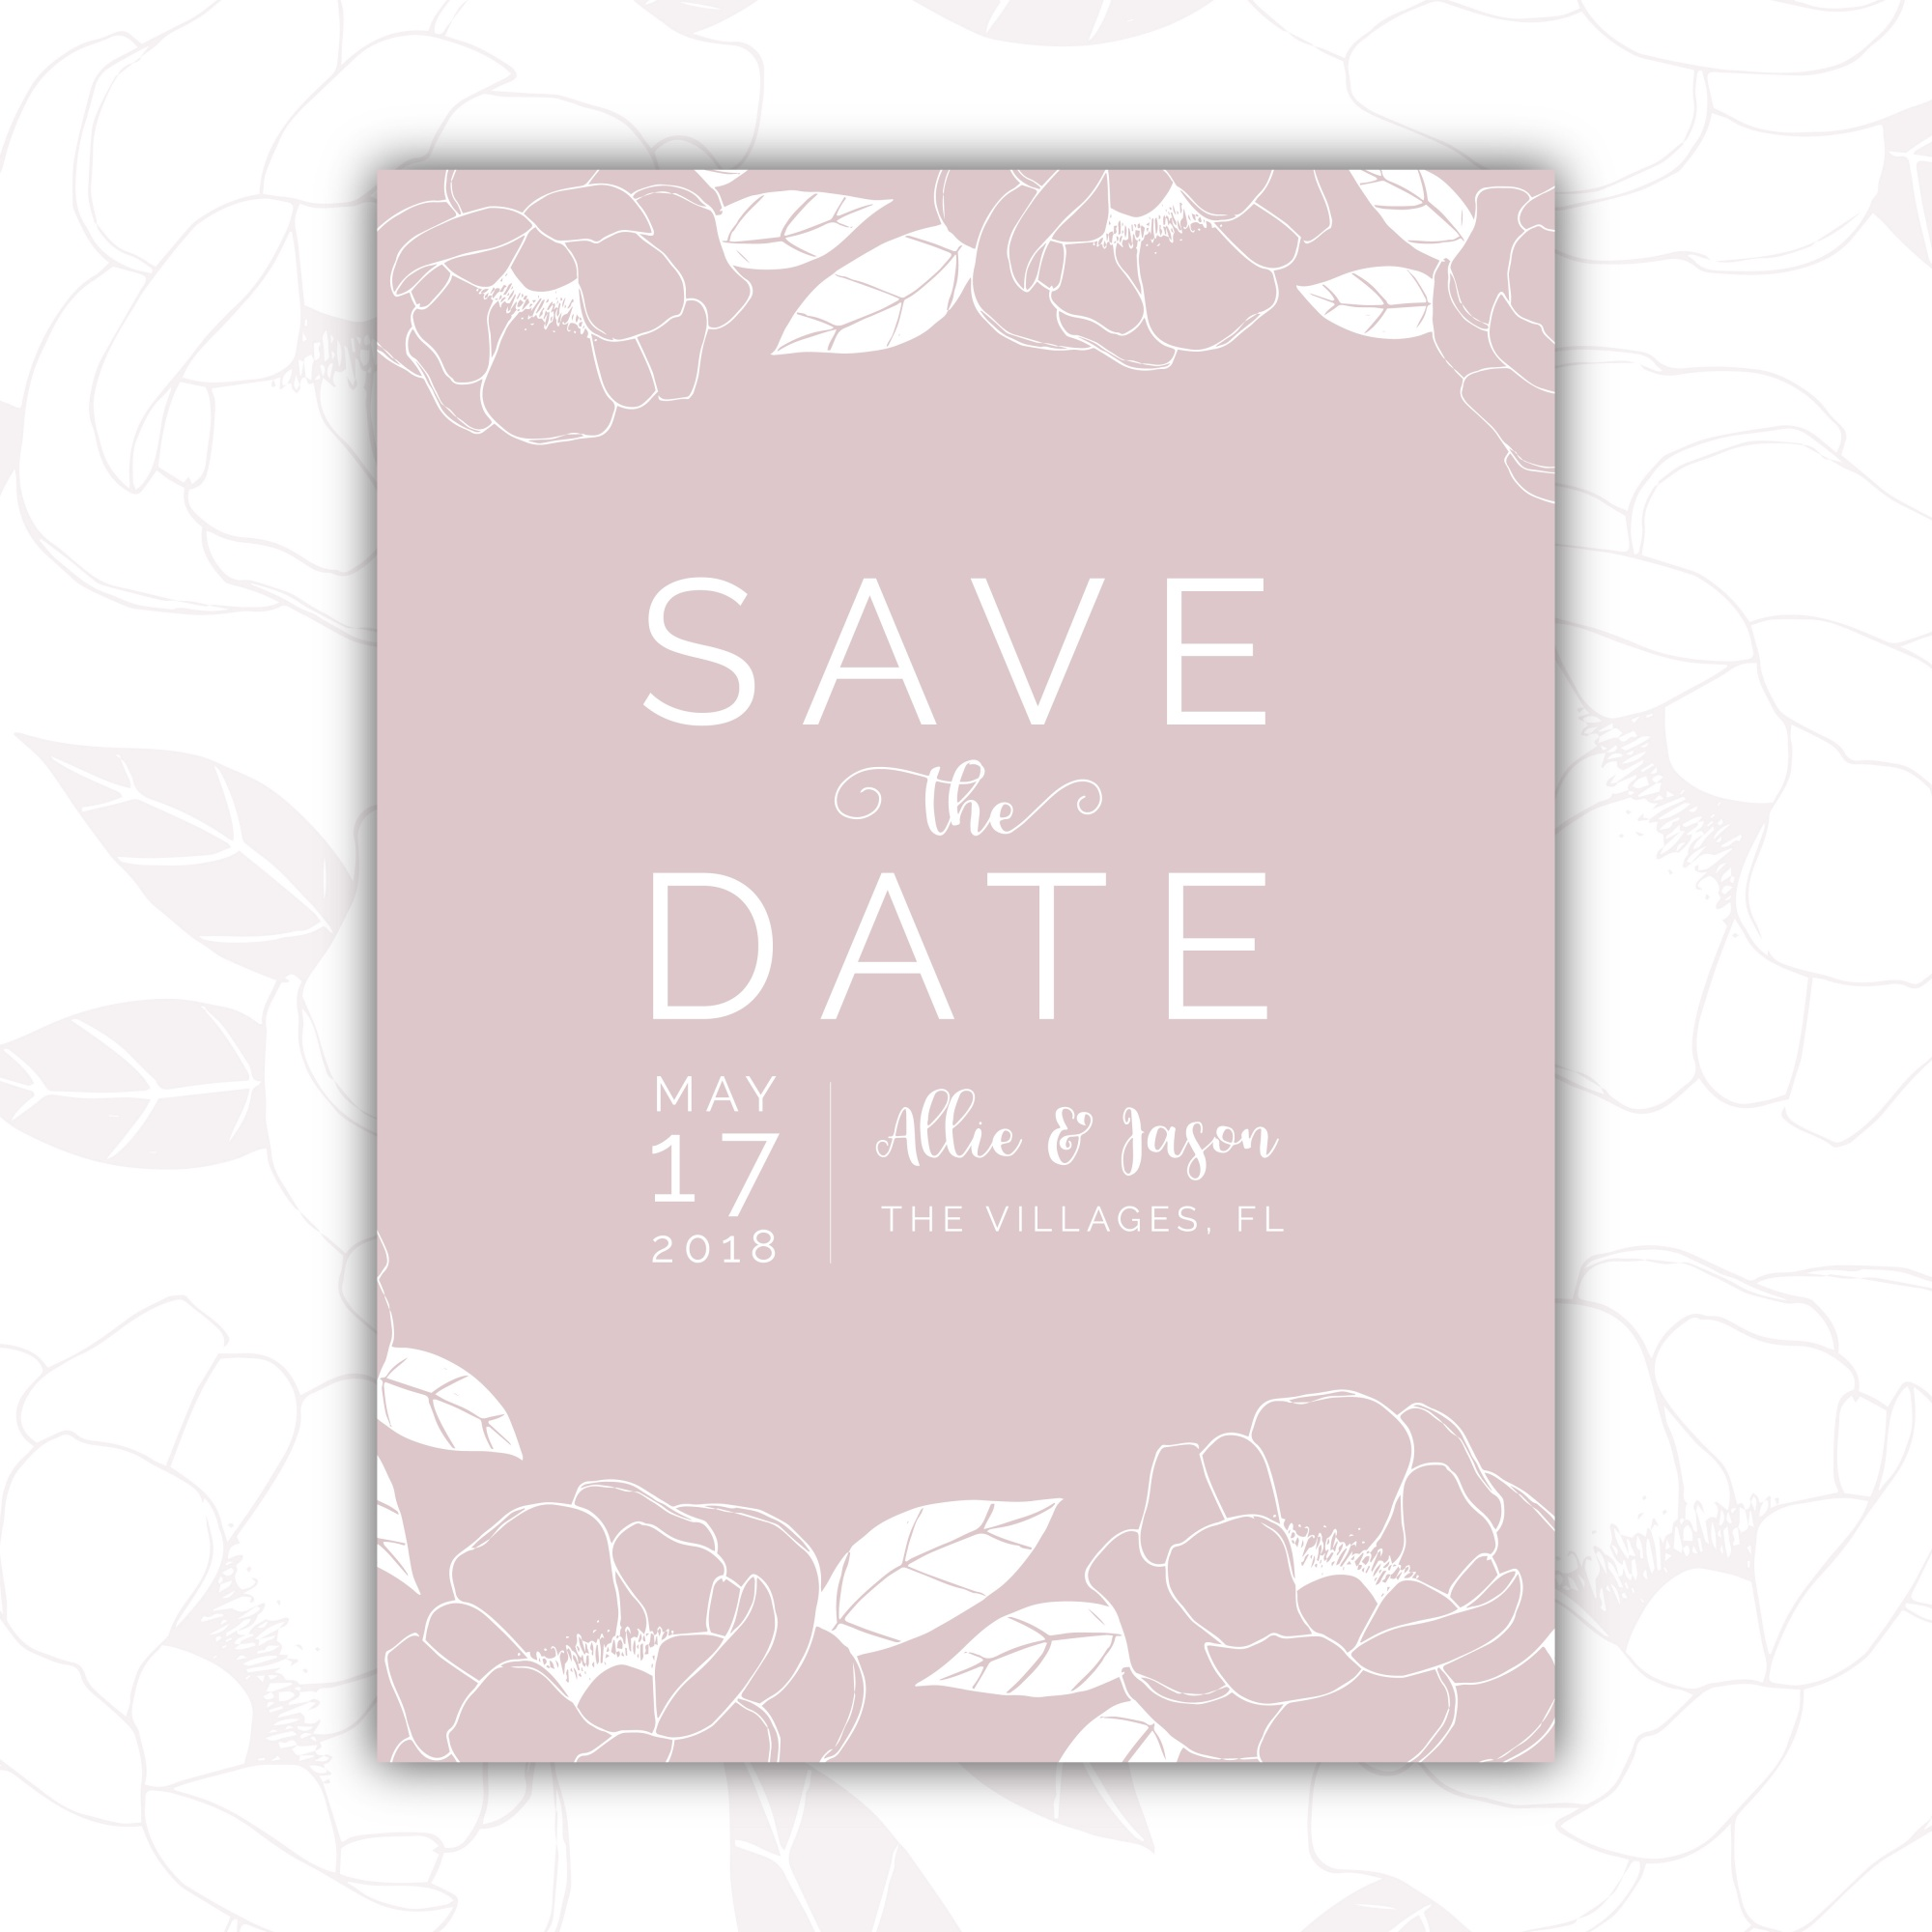 Tender hand drawn save the date card